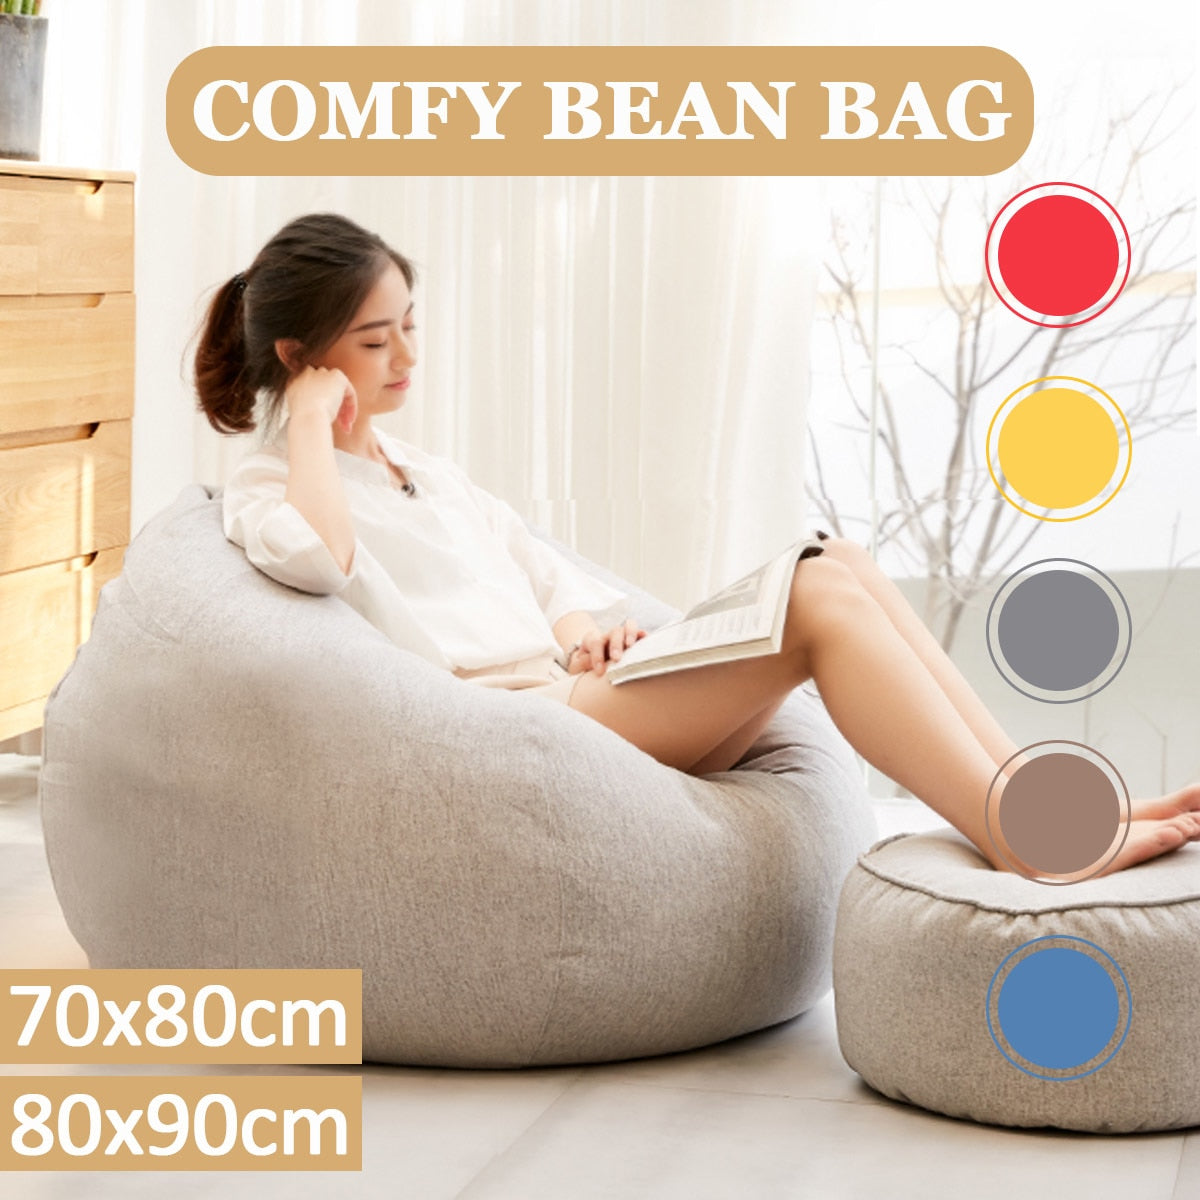 Pleasing Lazy Beanbag Sofas Without Filler Linen Cloth Lounger Seat Bean Bag Cover Chairs Pouf Puff Couch Tatami Living Room Furniture Dailytribune Chair Design For Home Dailytribuneorg